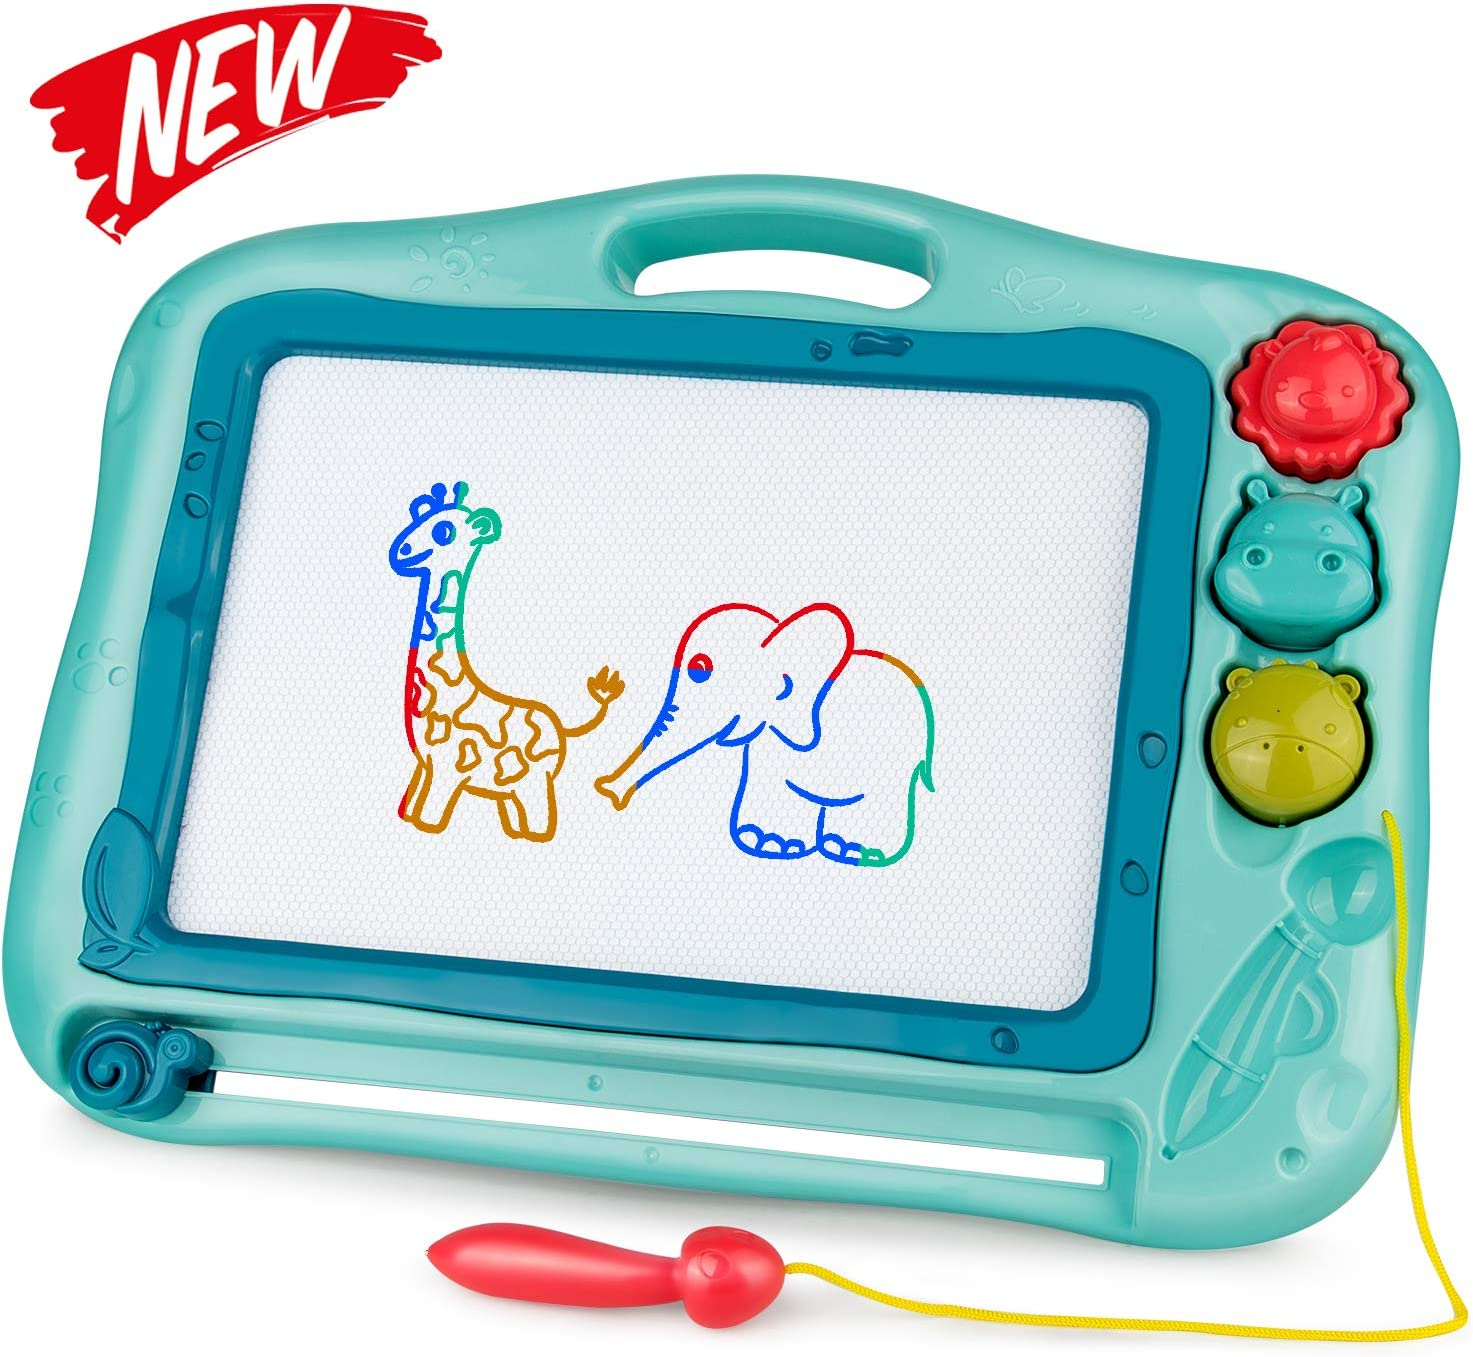 Gamenote Magnetic Drawing Board for Kids 12×16 inch - Doodle Board for Toddlers Comes with Adorable 3 Stamps